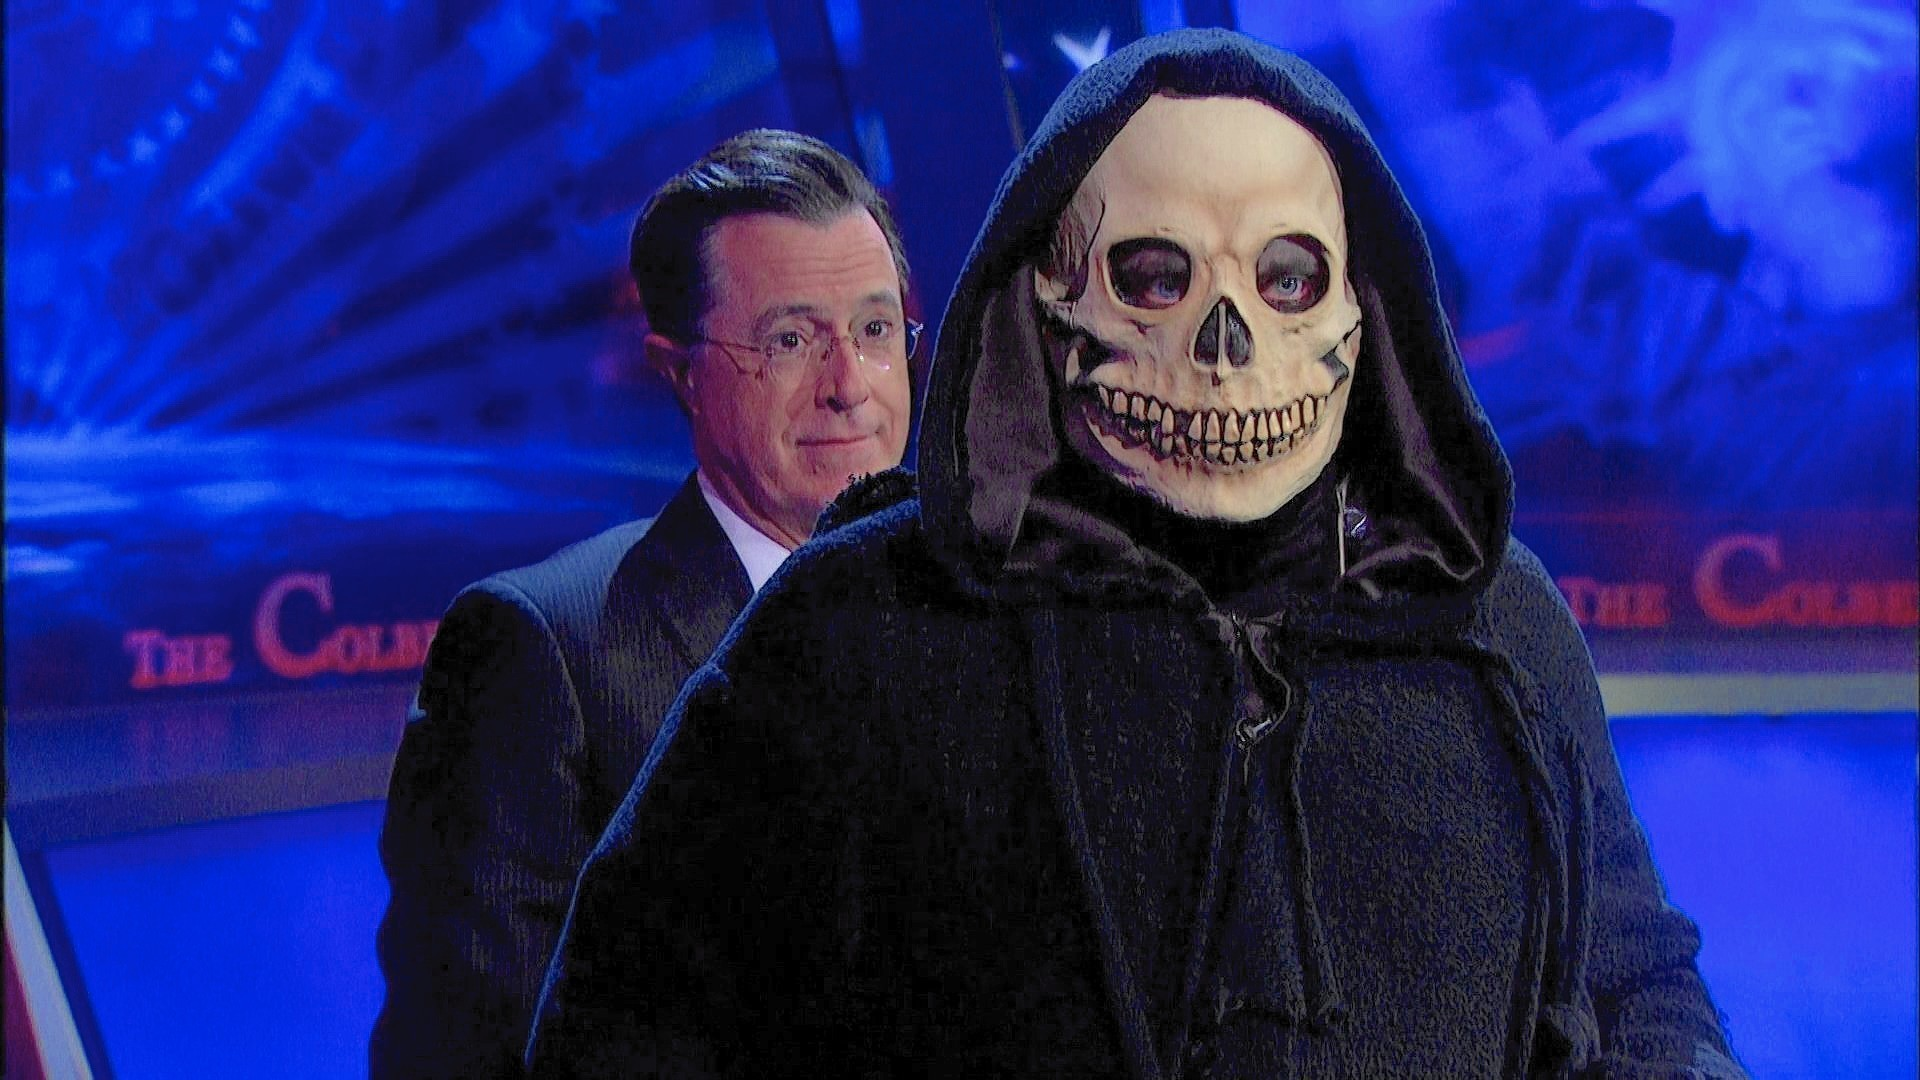 the colbert report finale well meet again lyrics